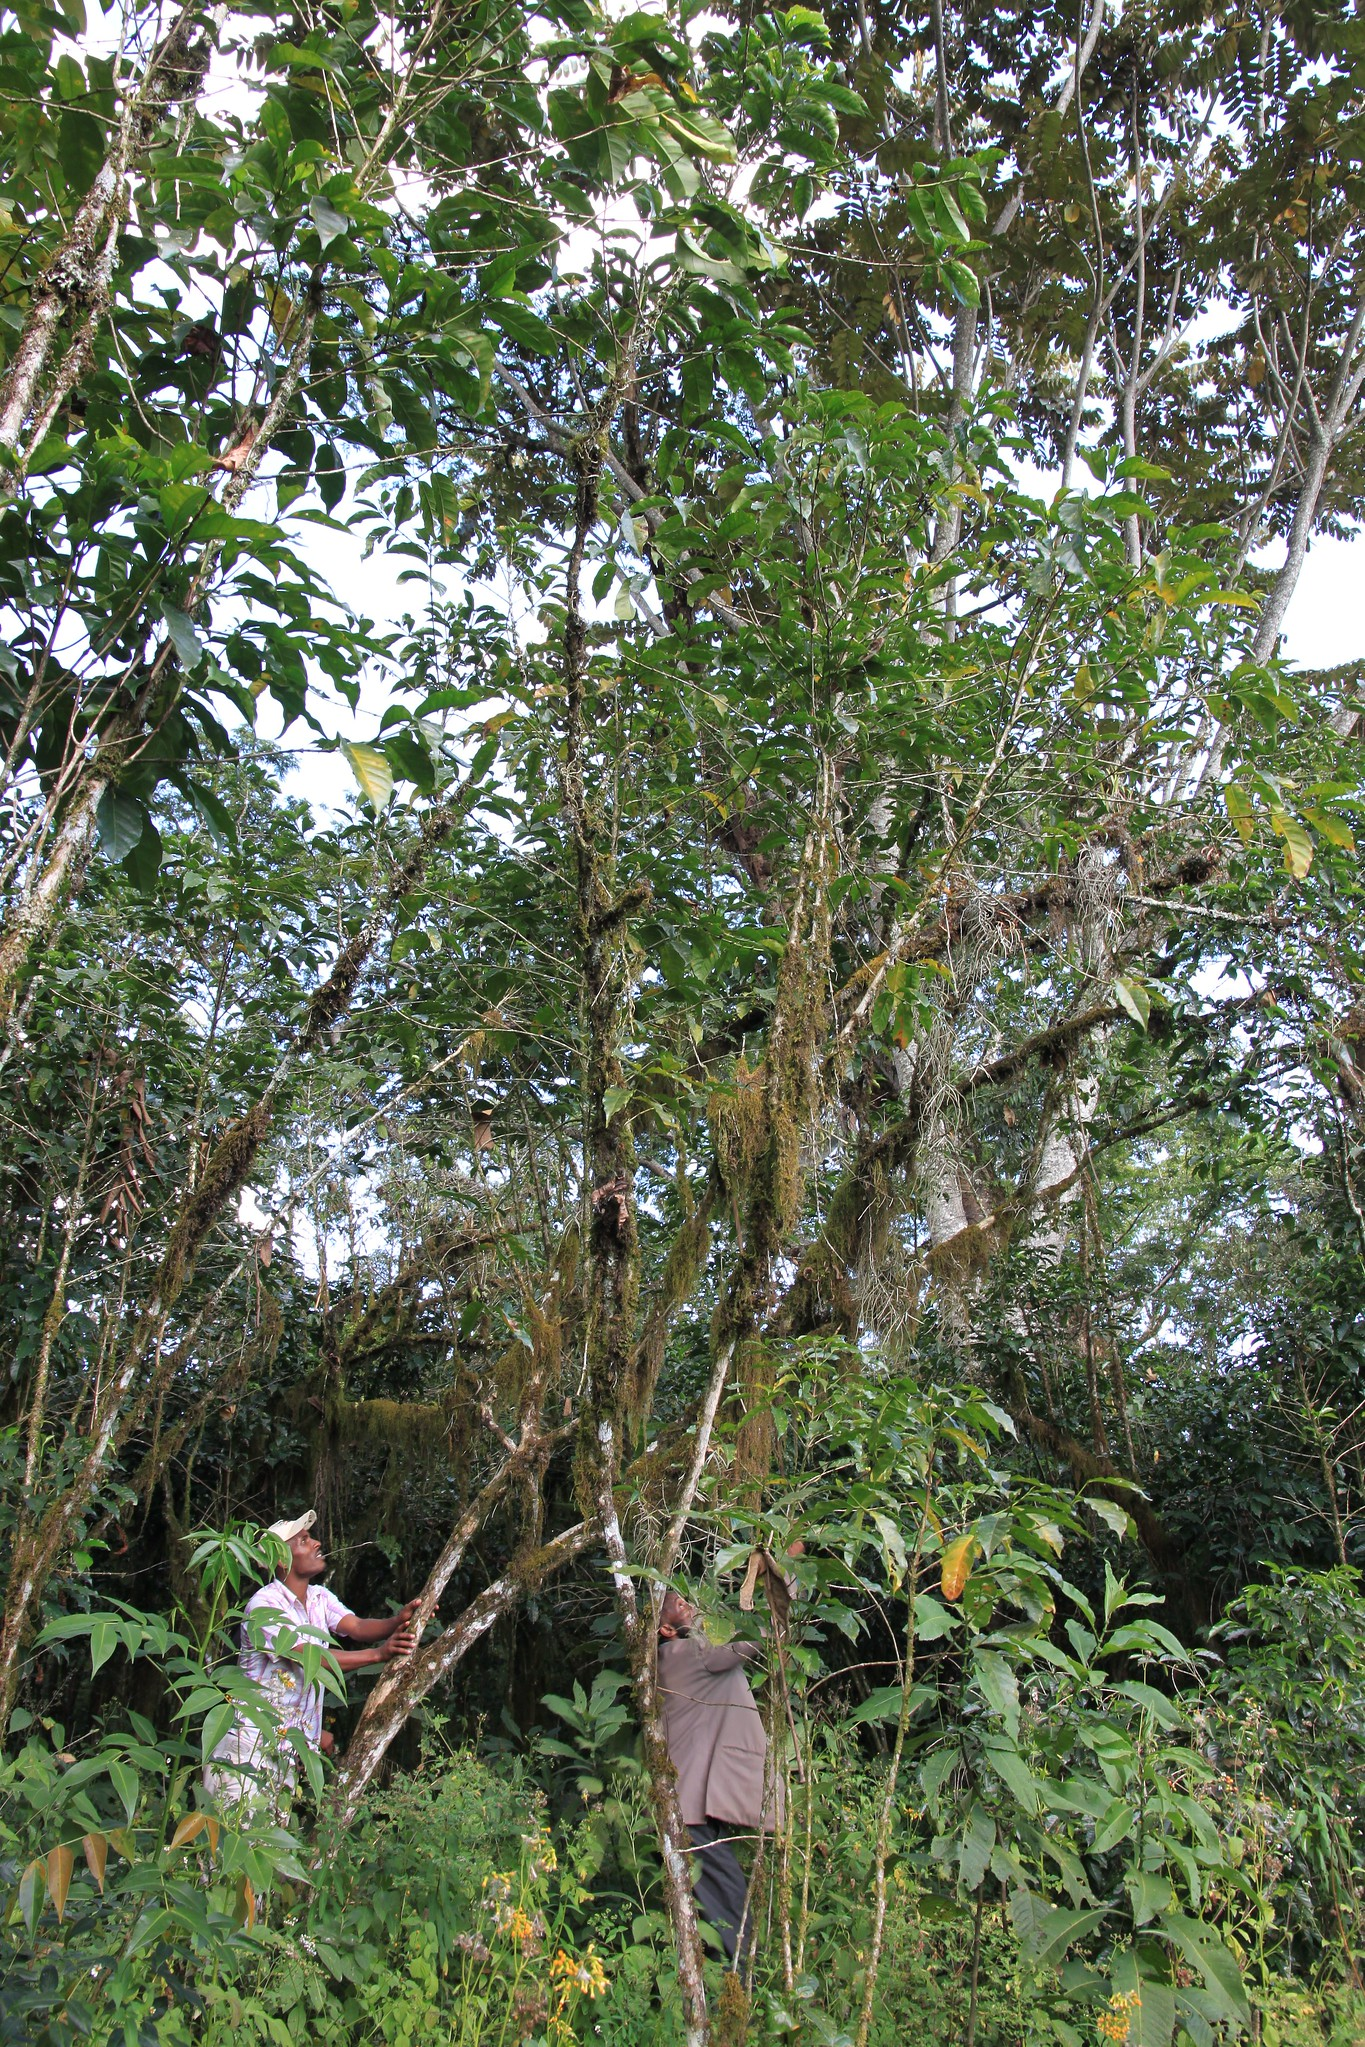 10 meter tall coffee tree!  This was unbelievable. Wild growing coffee tree in the forest around Yukro. To pick, the farmer has to pull the tree over to the side and bend it far enough down to reach the cherries. Fortunately the tree is pretty flexible.